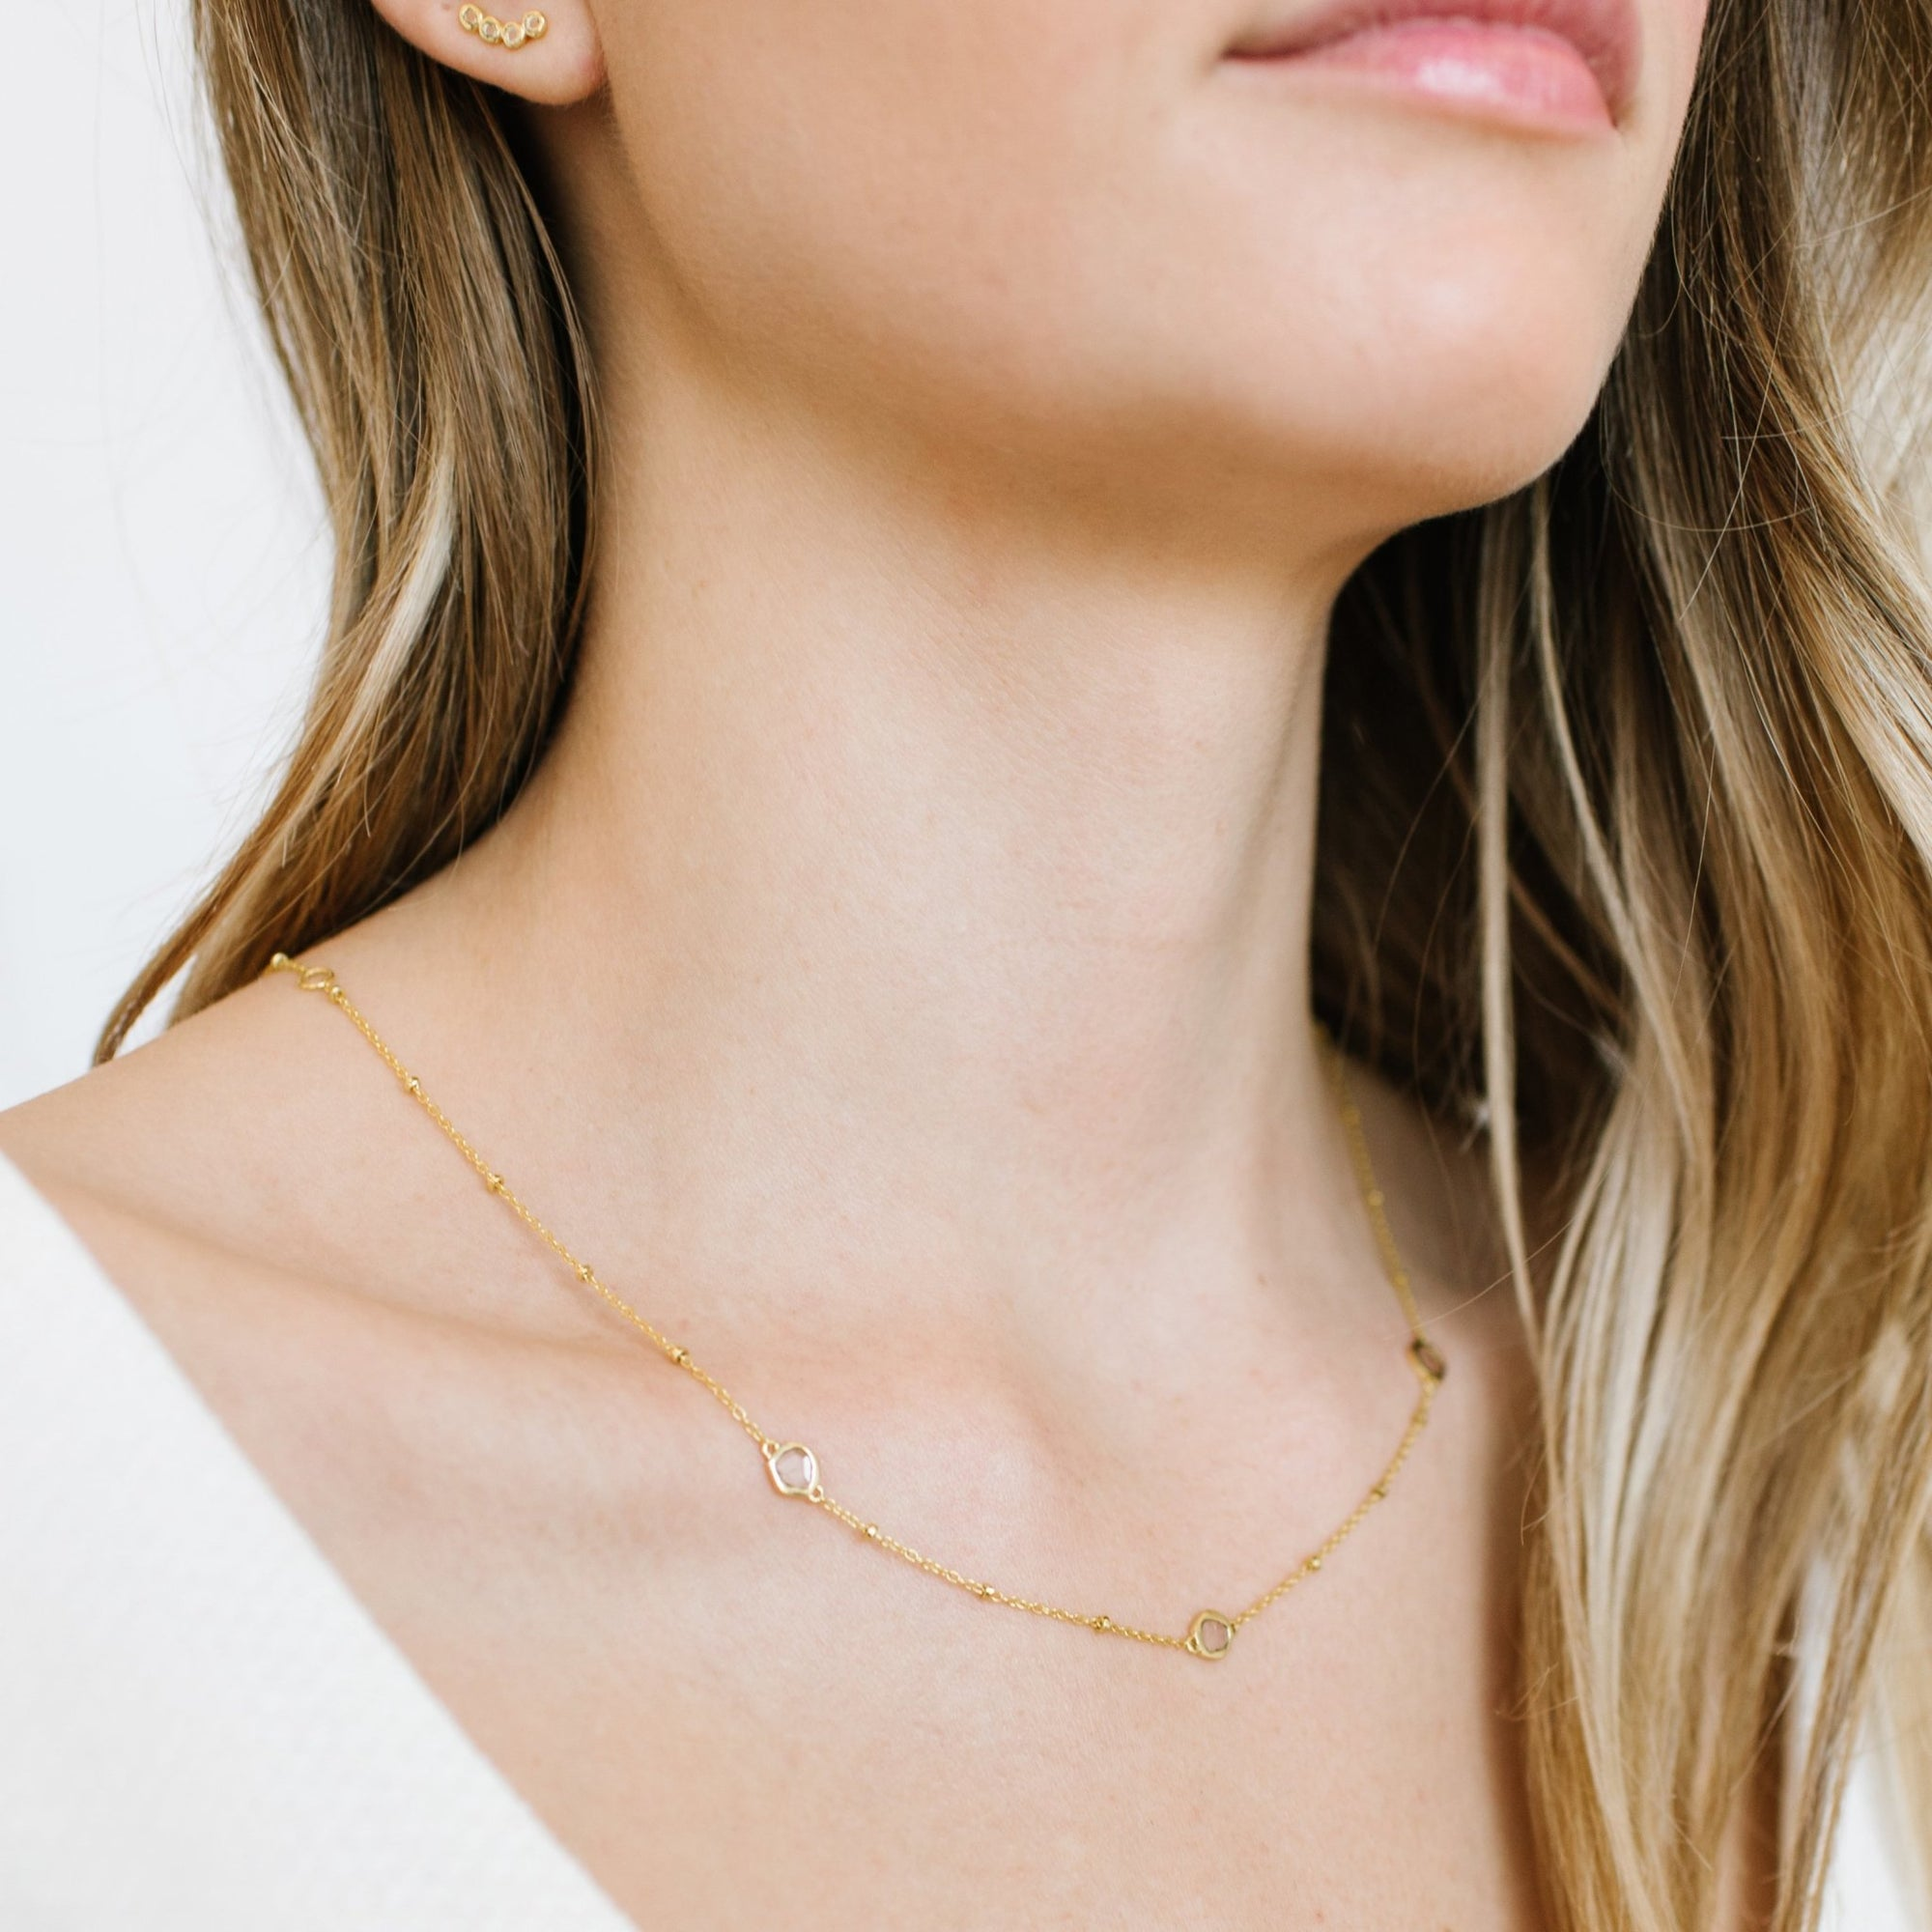 True Sliced Diamond Trio Necklace Gold - SO PRETTY CARA COTTER